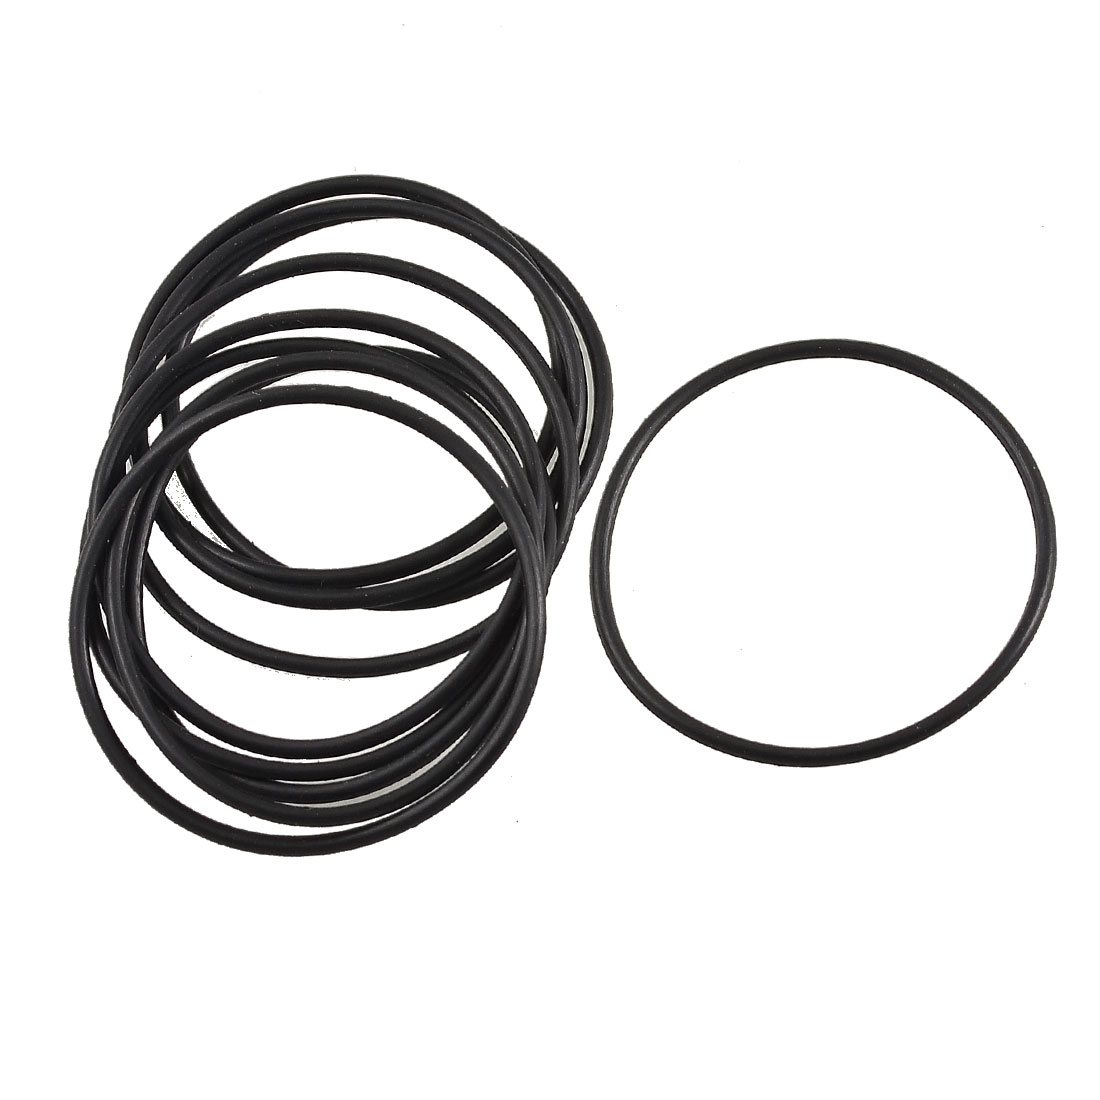 10 Pcs Black Rubber Oil Filter Sealing O Ring Gasket 36mm x 33mm x 1.5mm